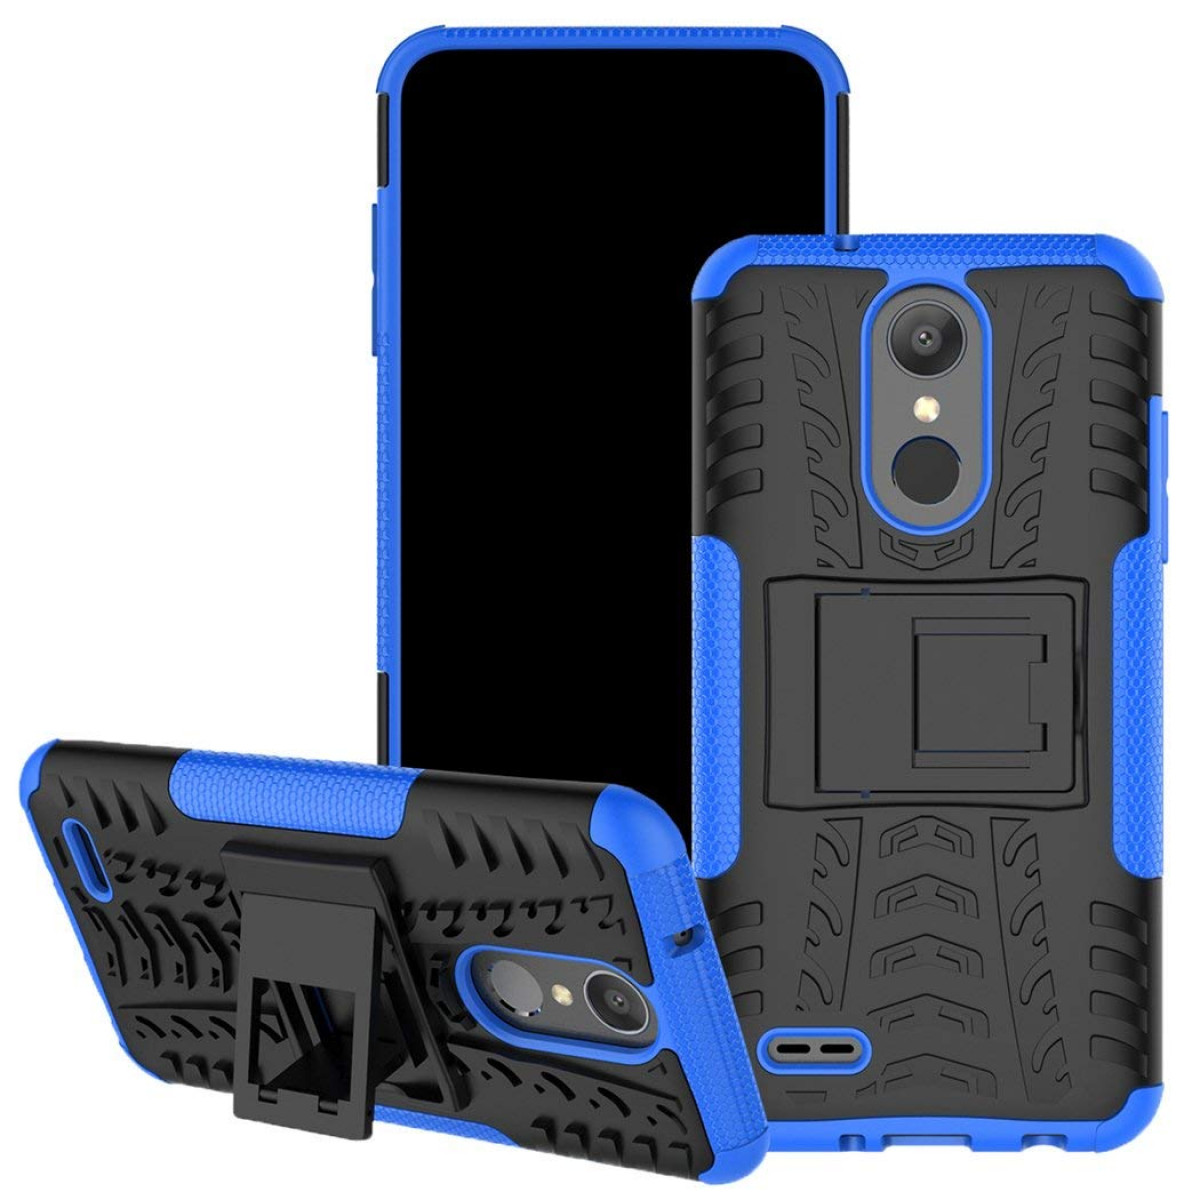 new product db16a 32c16 LG Aristo 2 Case, for LG Tribute Dynasty/LG Zone 4/LG Fortune 2/LG K8  2018/LG K8+ Case, Viodolge [Shockproof] Hybrid Tough Rugged Dual Layer ...